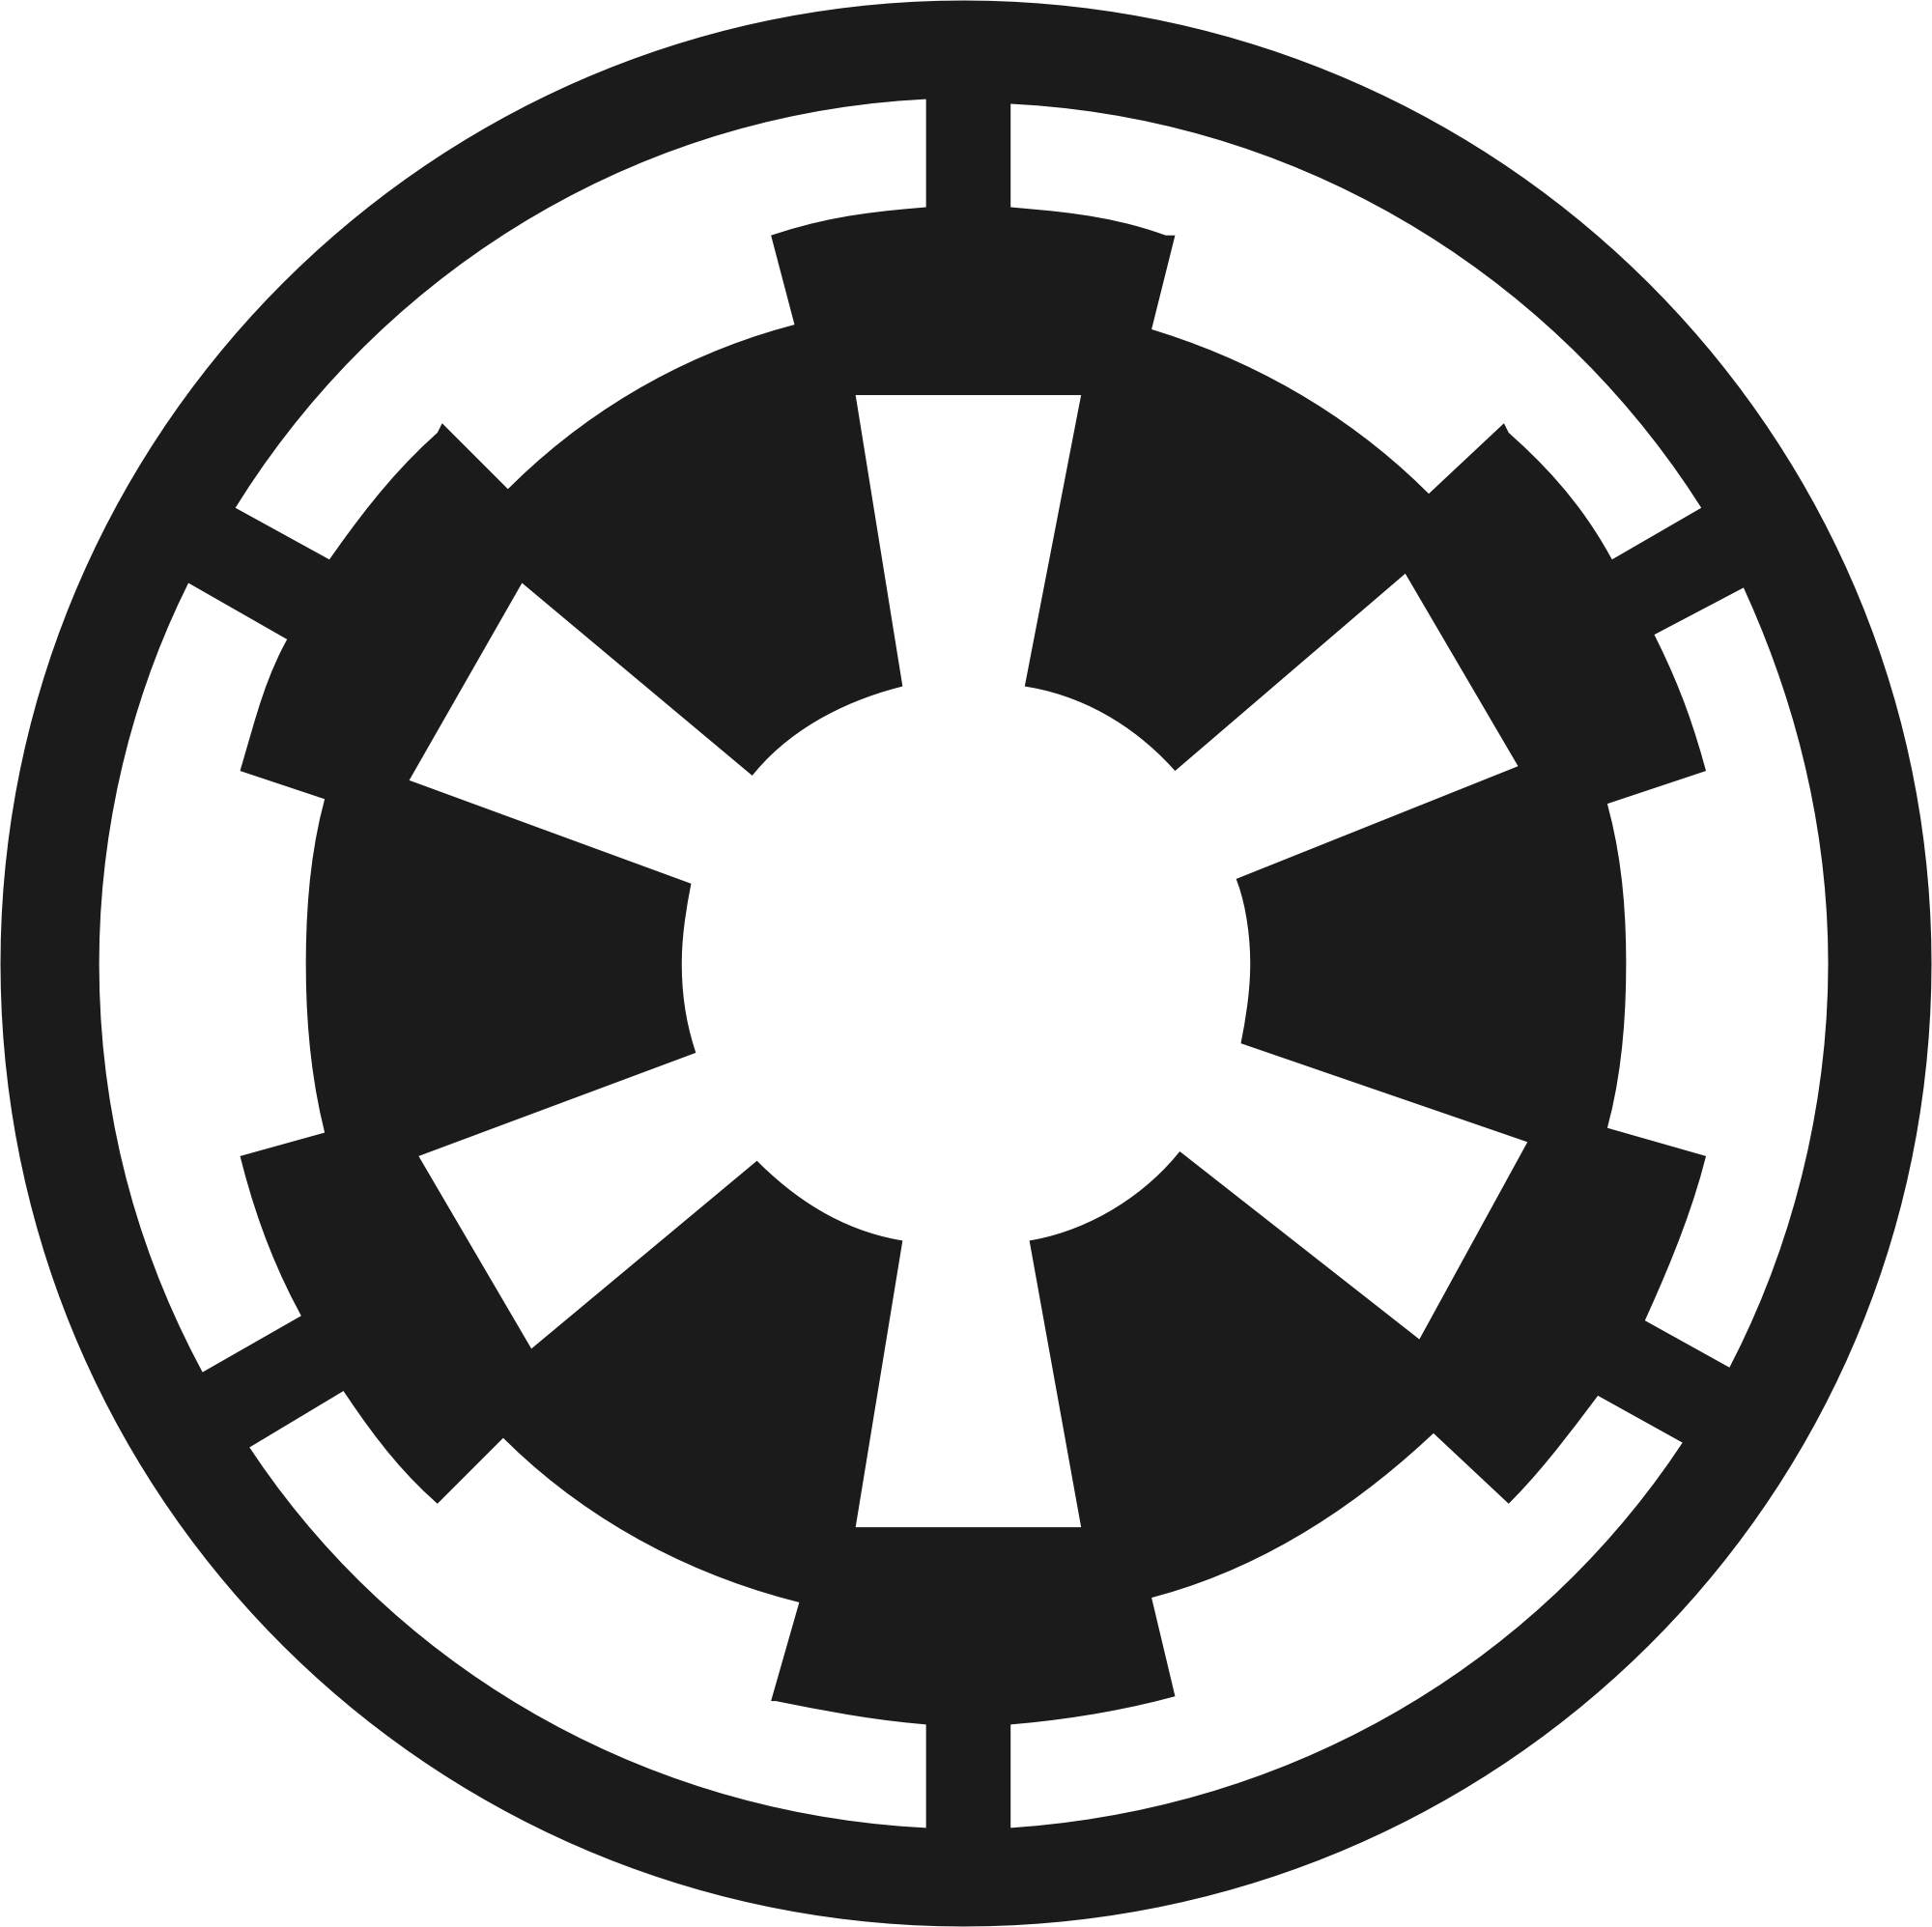 Image result for star wars empire logo